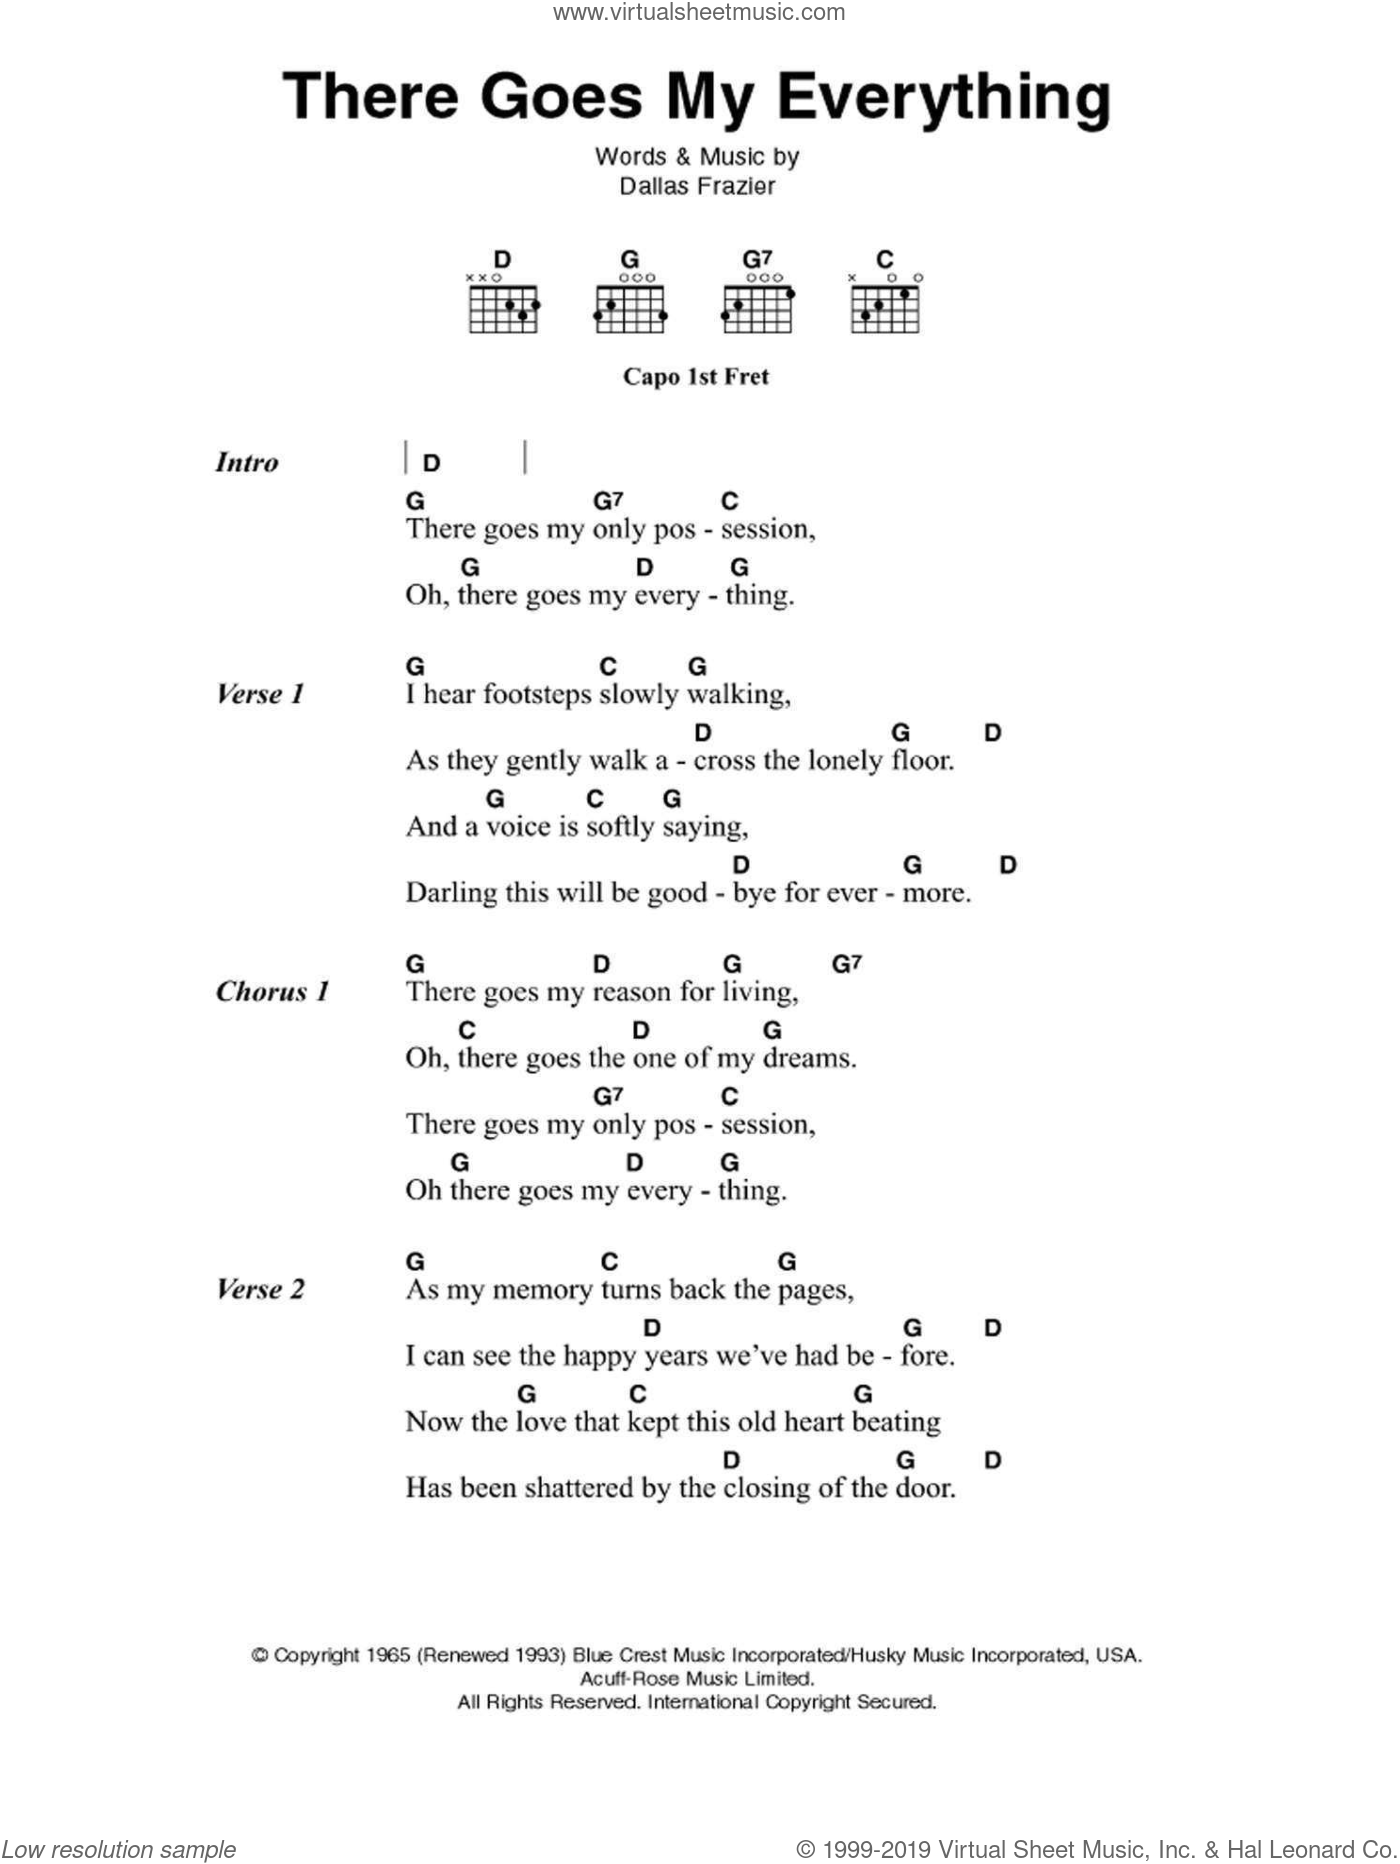 There Goes My Everything sheet music for guitar (chords) by Elvis Presley, Jack Greene and Dallas Frazier, intermediate skill level